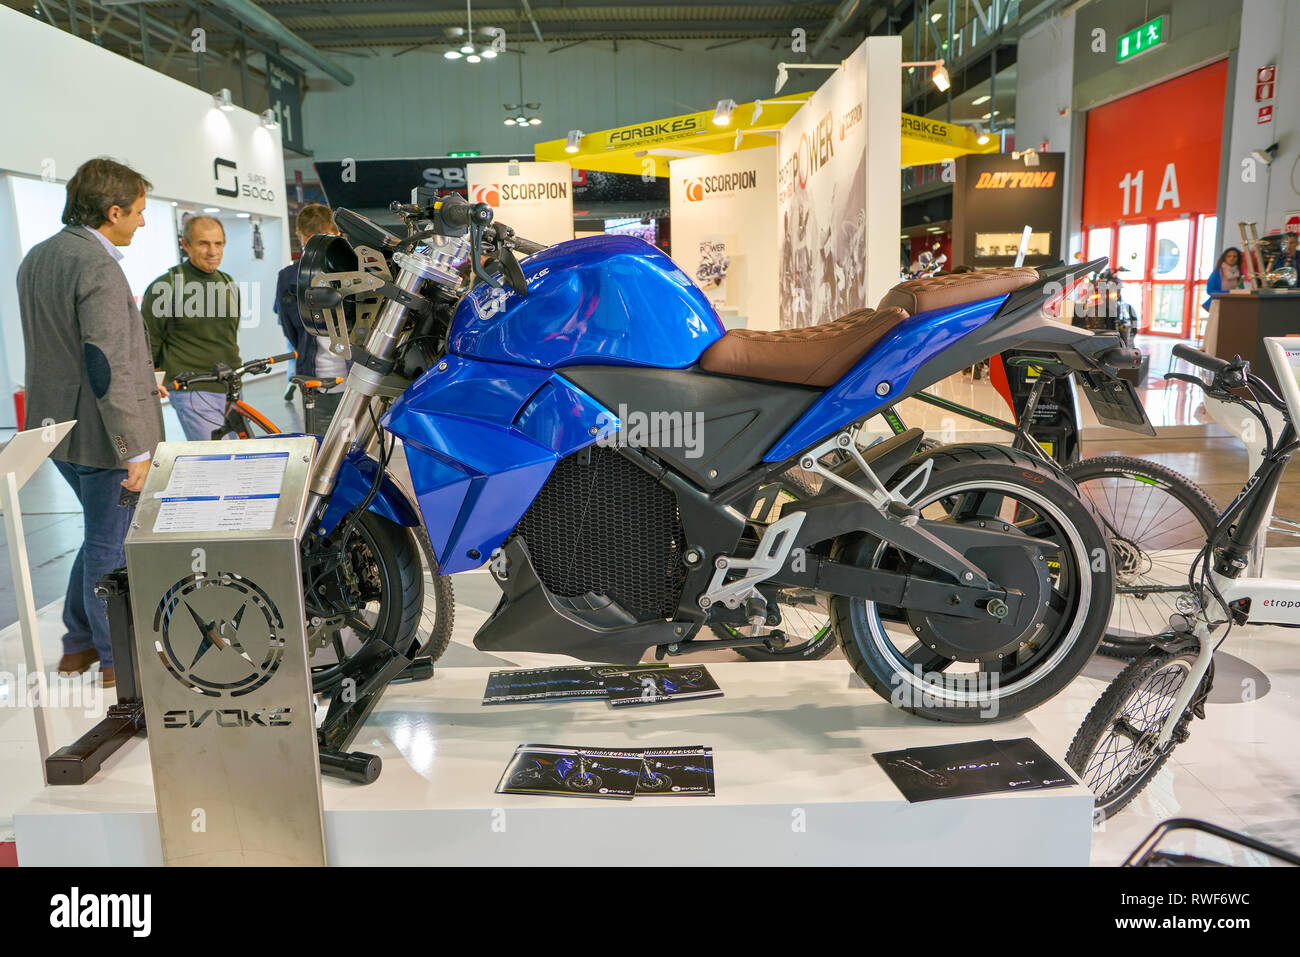 MILAN, ITALY - NOVEMBER 11, 2017: Evoke Motorcycle on display at EICMA 2017 - 75th International Motorcycle Exhibition - Stock Image